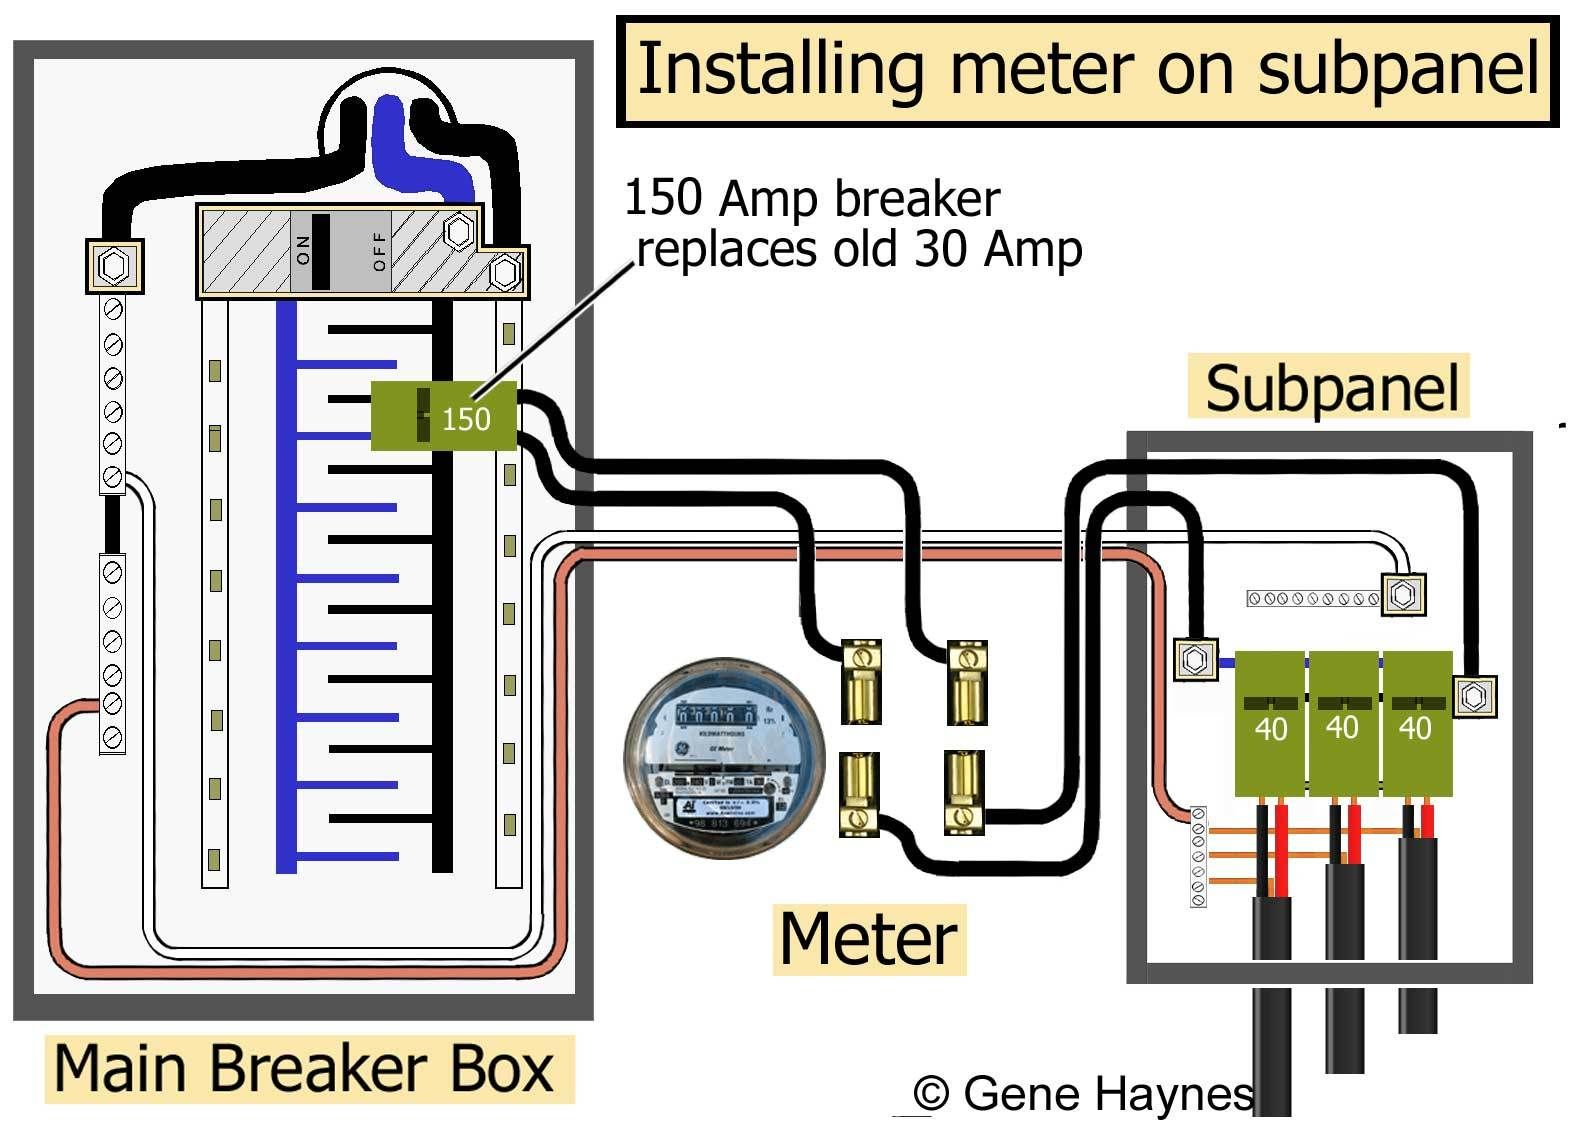 electric sub meter wiring diagram wirdig wiring diagram [ 1575 x 1130 Pixel ]